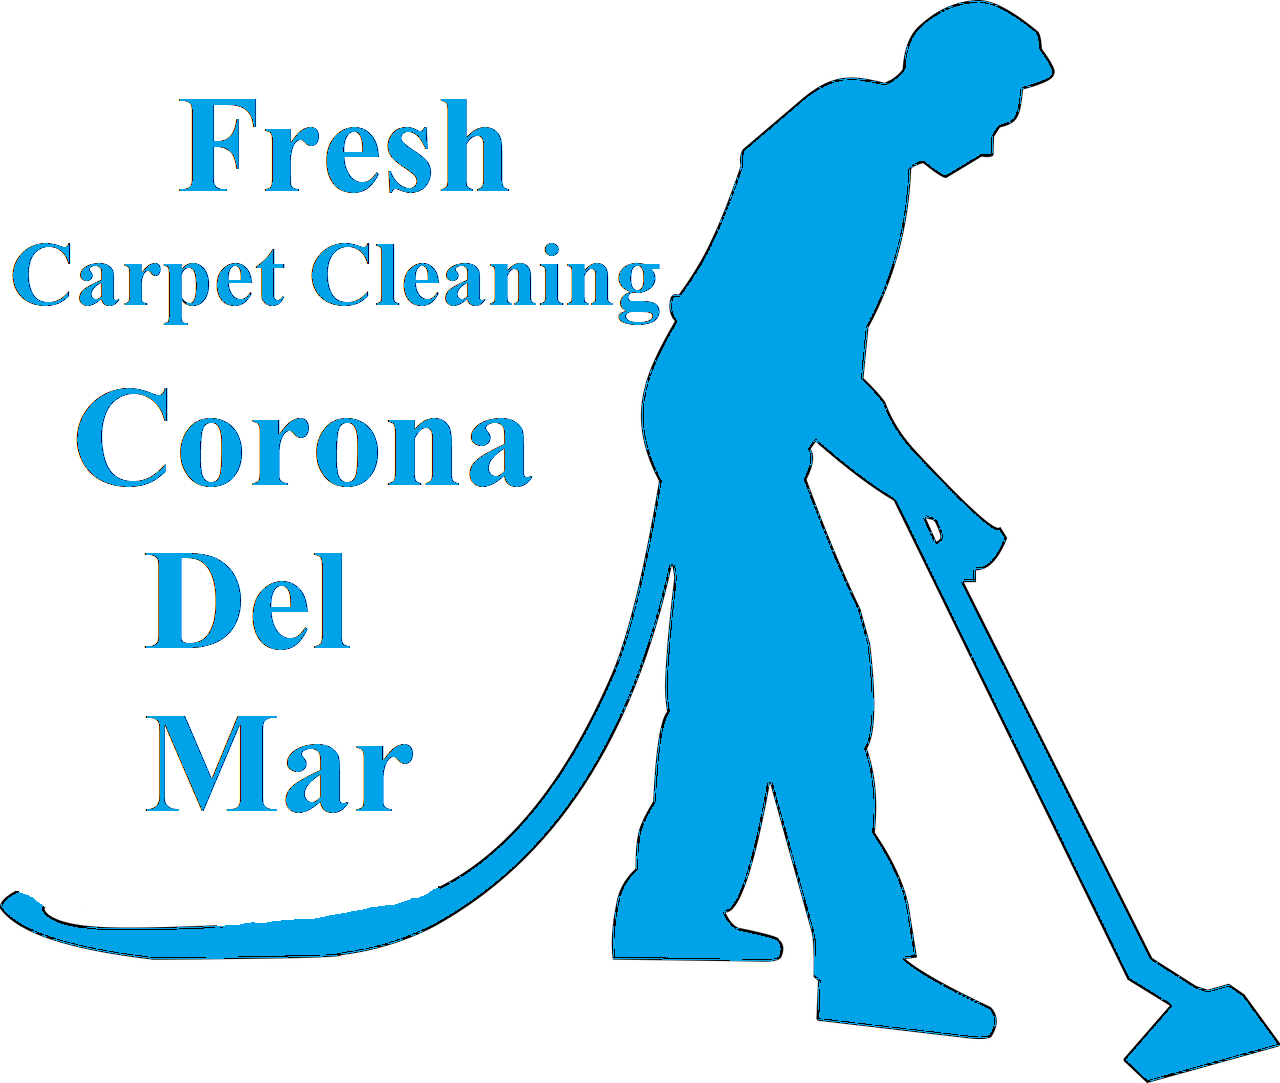 Fresh Carpet Cleaning Corona Del Mar